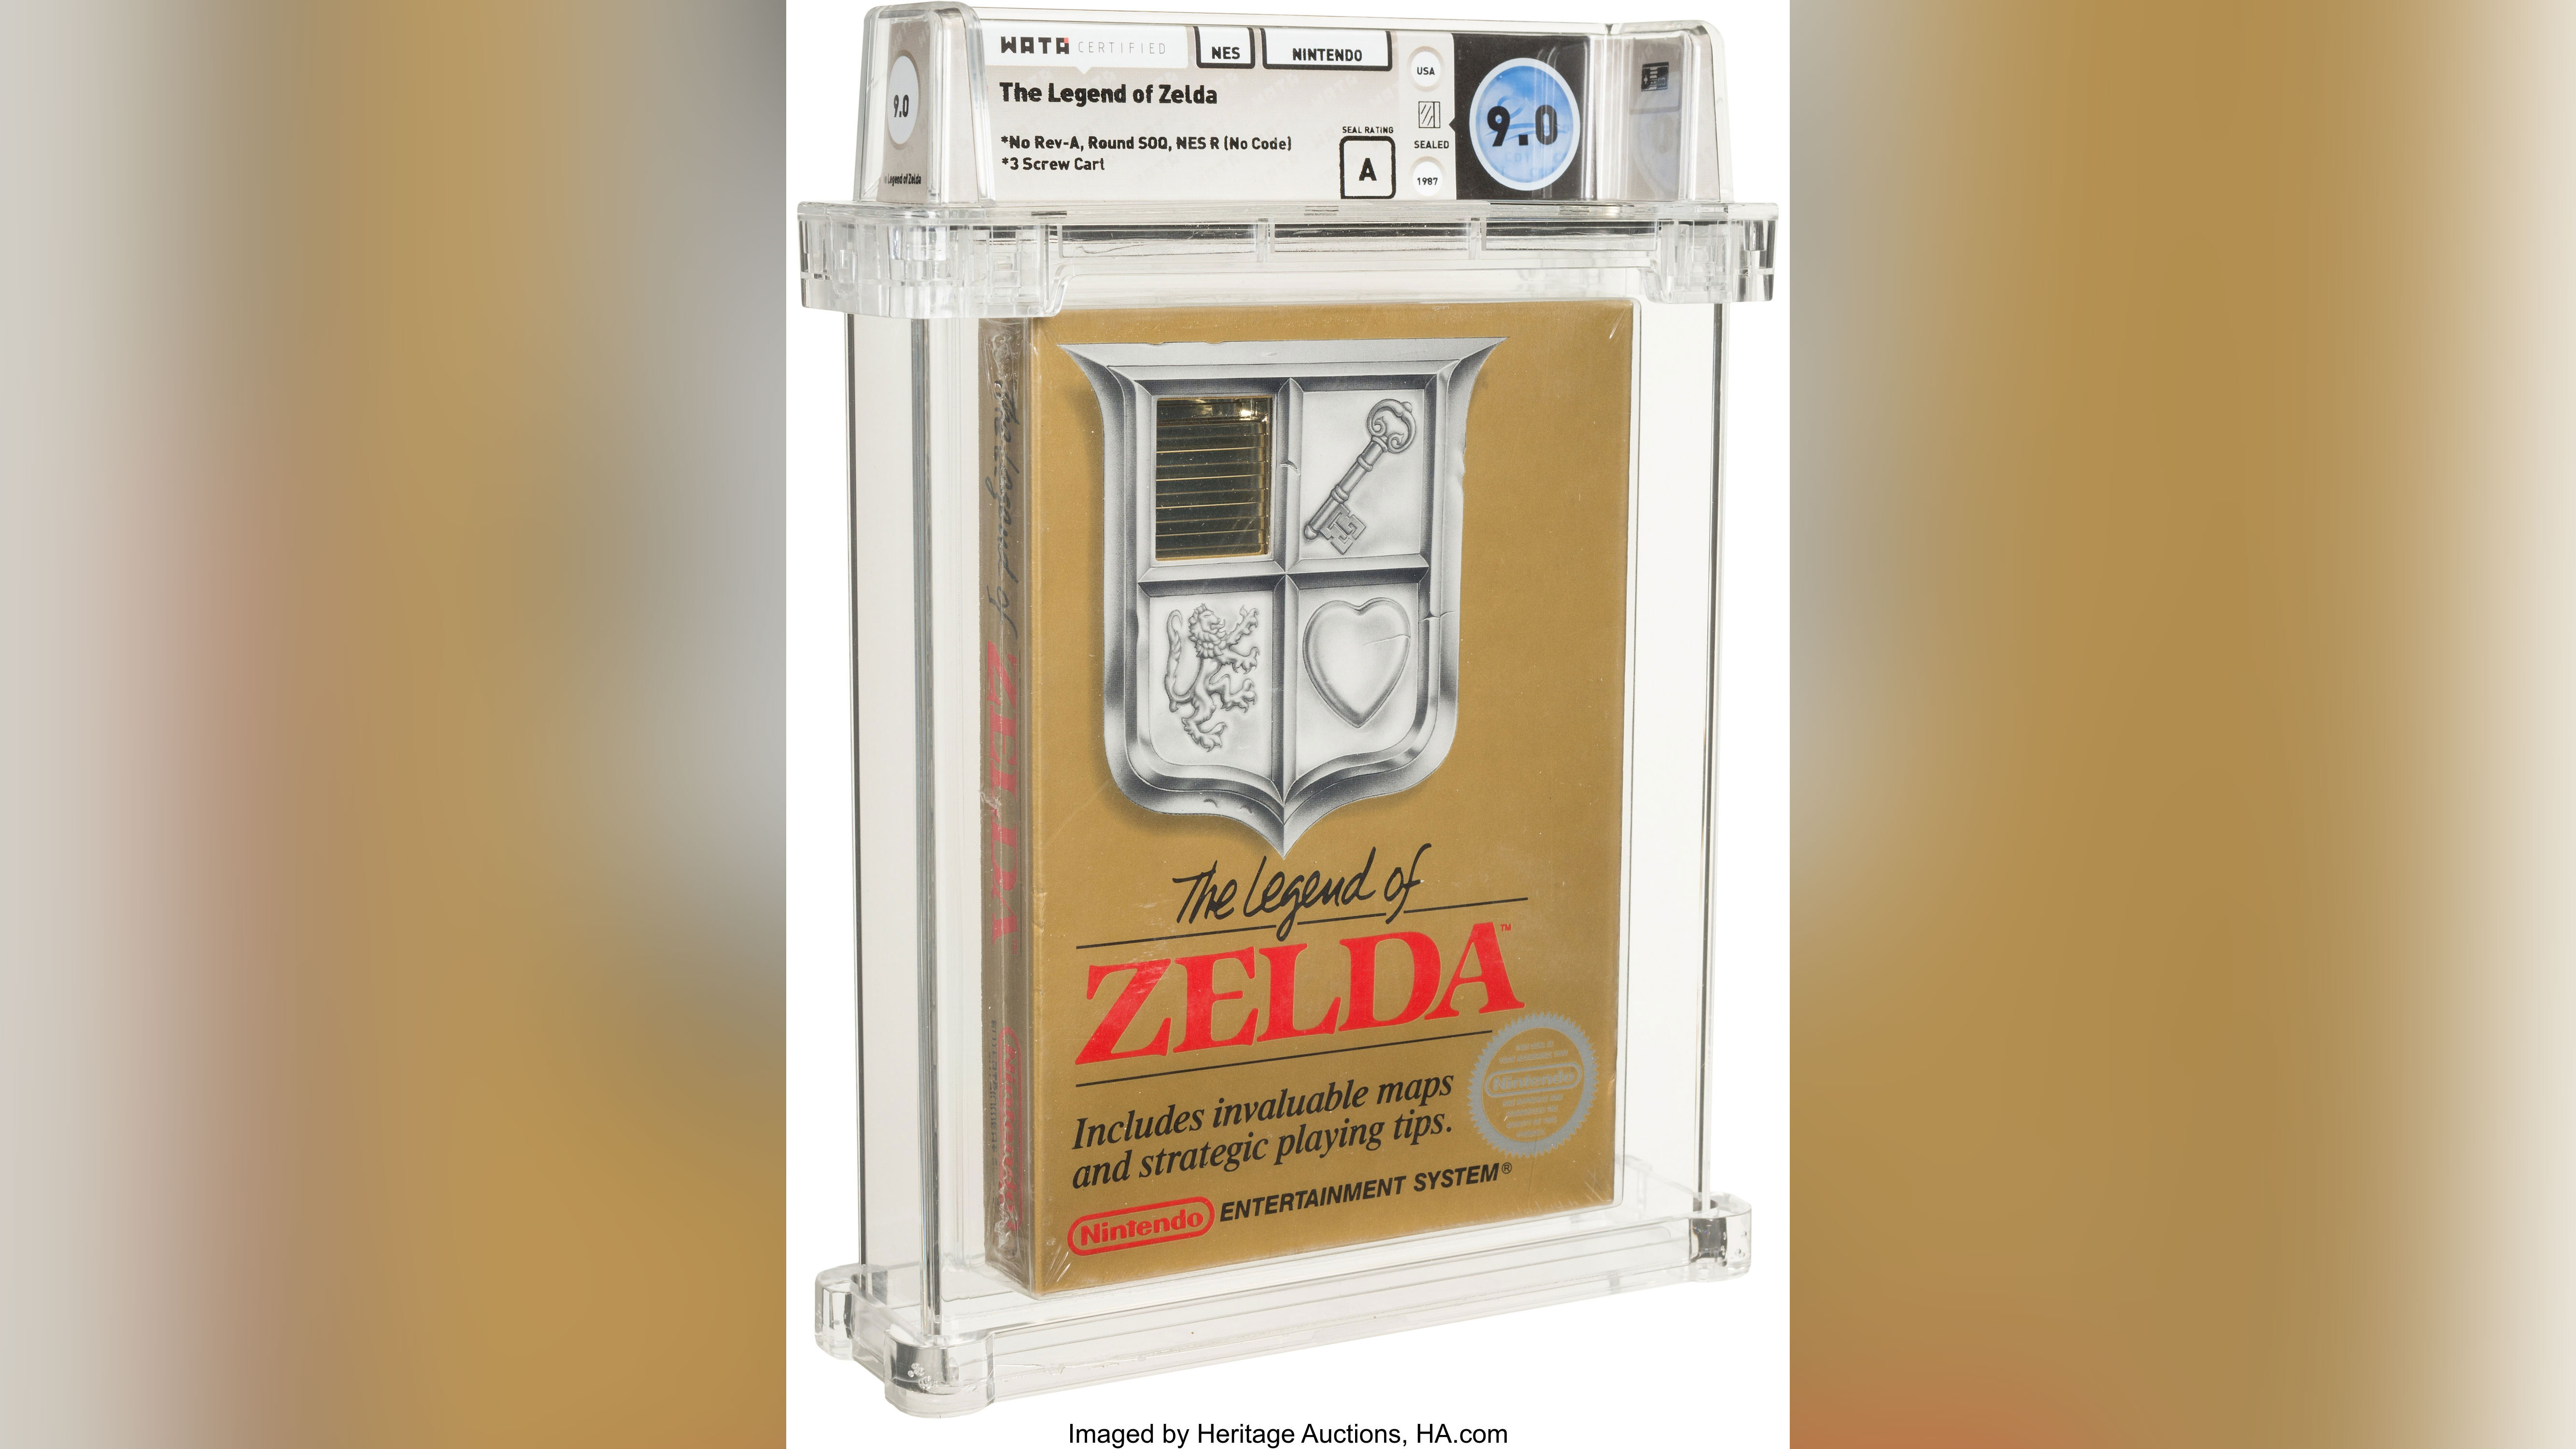 'Legend of Zelda' sells for $870,000 at auction, a record for a video game